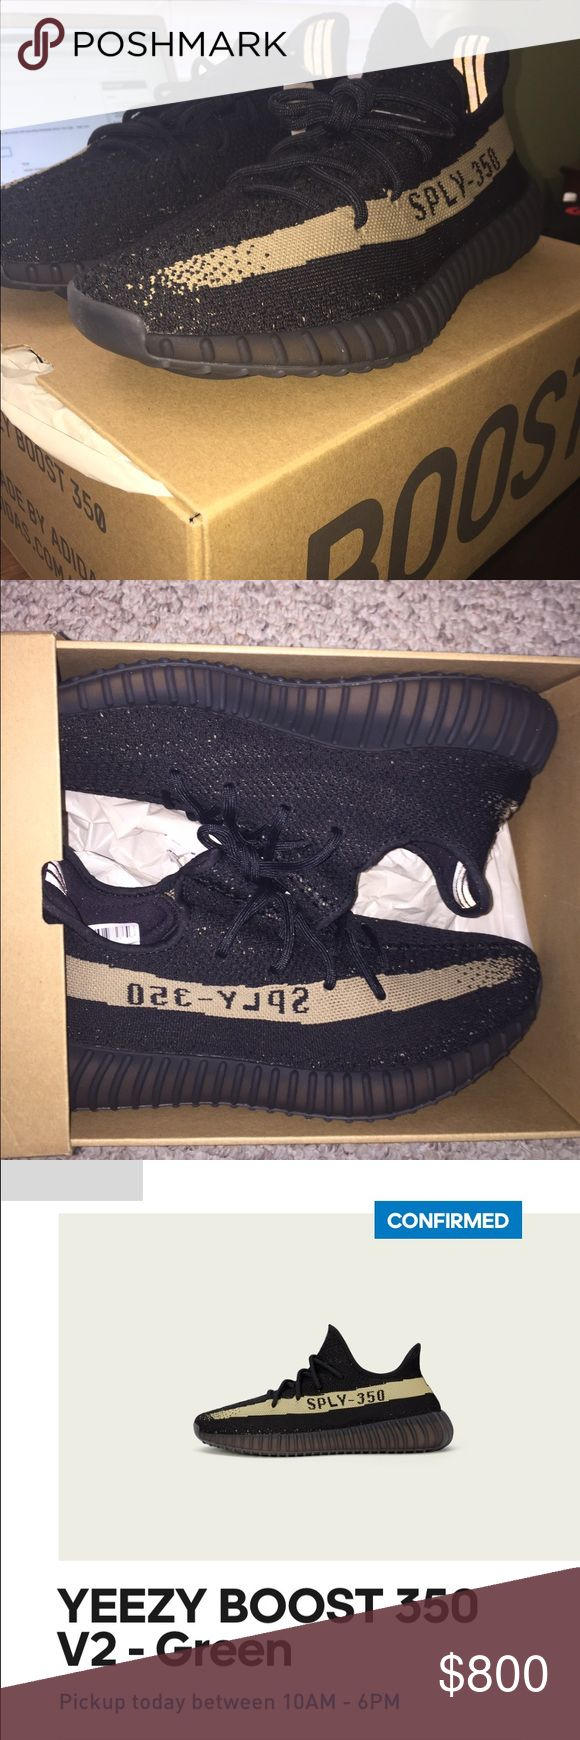 Adidas Yeezy Boost 350 V2 I have a brand new, store bought pair of Green Adidas Yeezy Boost 350. These are the most recent pair, and I got them from reserving on the adidas Confirmed app. I got them November 23, 2016 on release day for their retail price of $220. I have original receipt and box/tags. Everything is brand new. If you having any questions please let me know. The shoes are size 11 and are the GREEN color way. Adidas Shoes Athletic Shoes